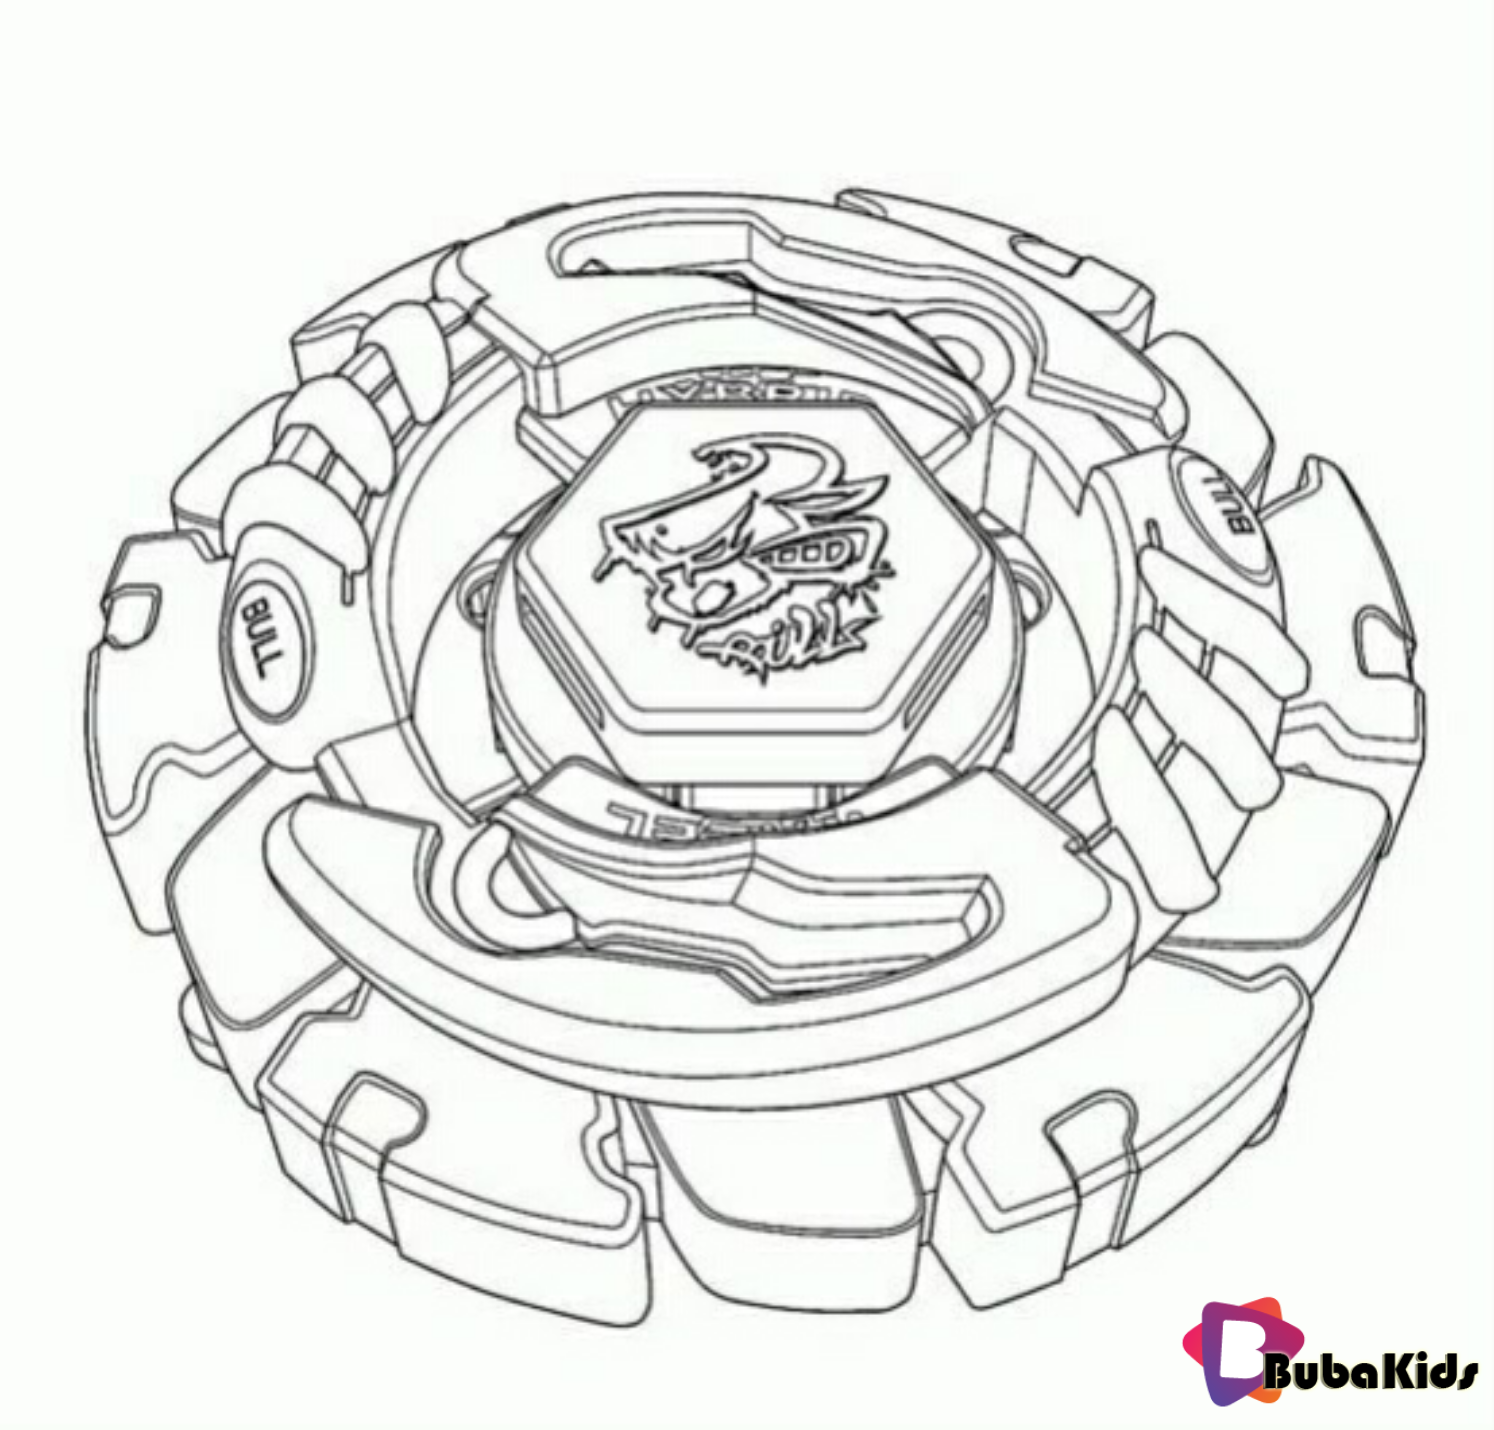 Marvelous Photo Of Beyblade Coloring Pages Beyblade Printable Coloring Pages Beyb Hello Kitty Colouring Pages Cartoon Coloring Pages Valentine Coloring Pages